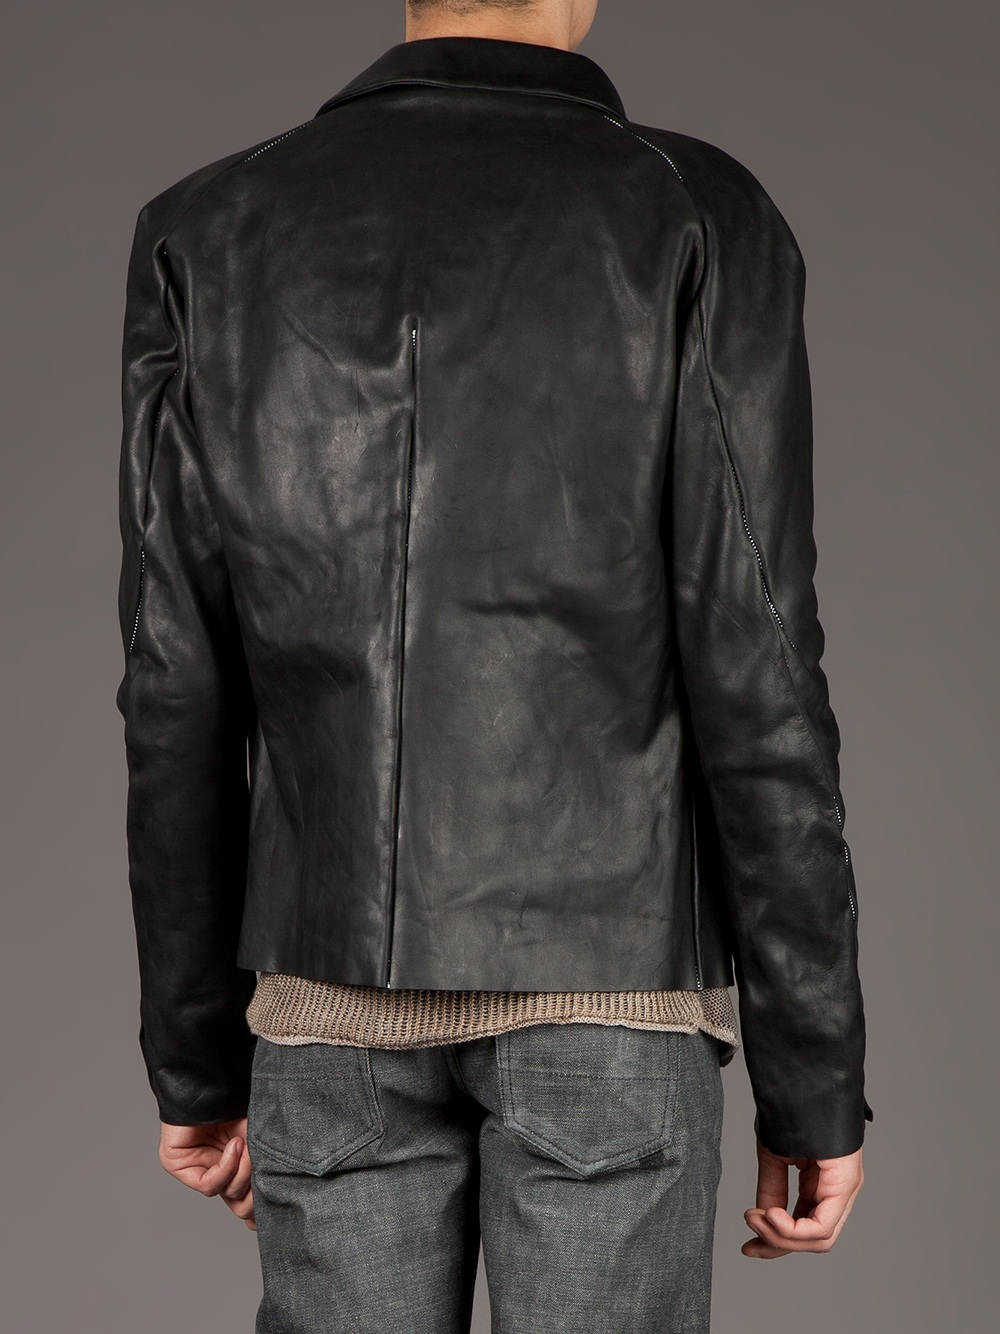 126759d3929 Lyst - Incarnation Classic Horse Leather Jacket in Black for Men